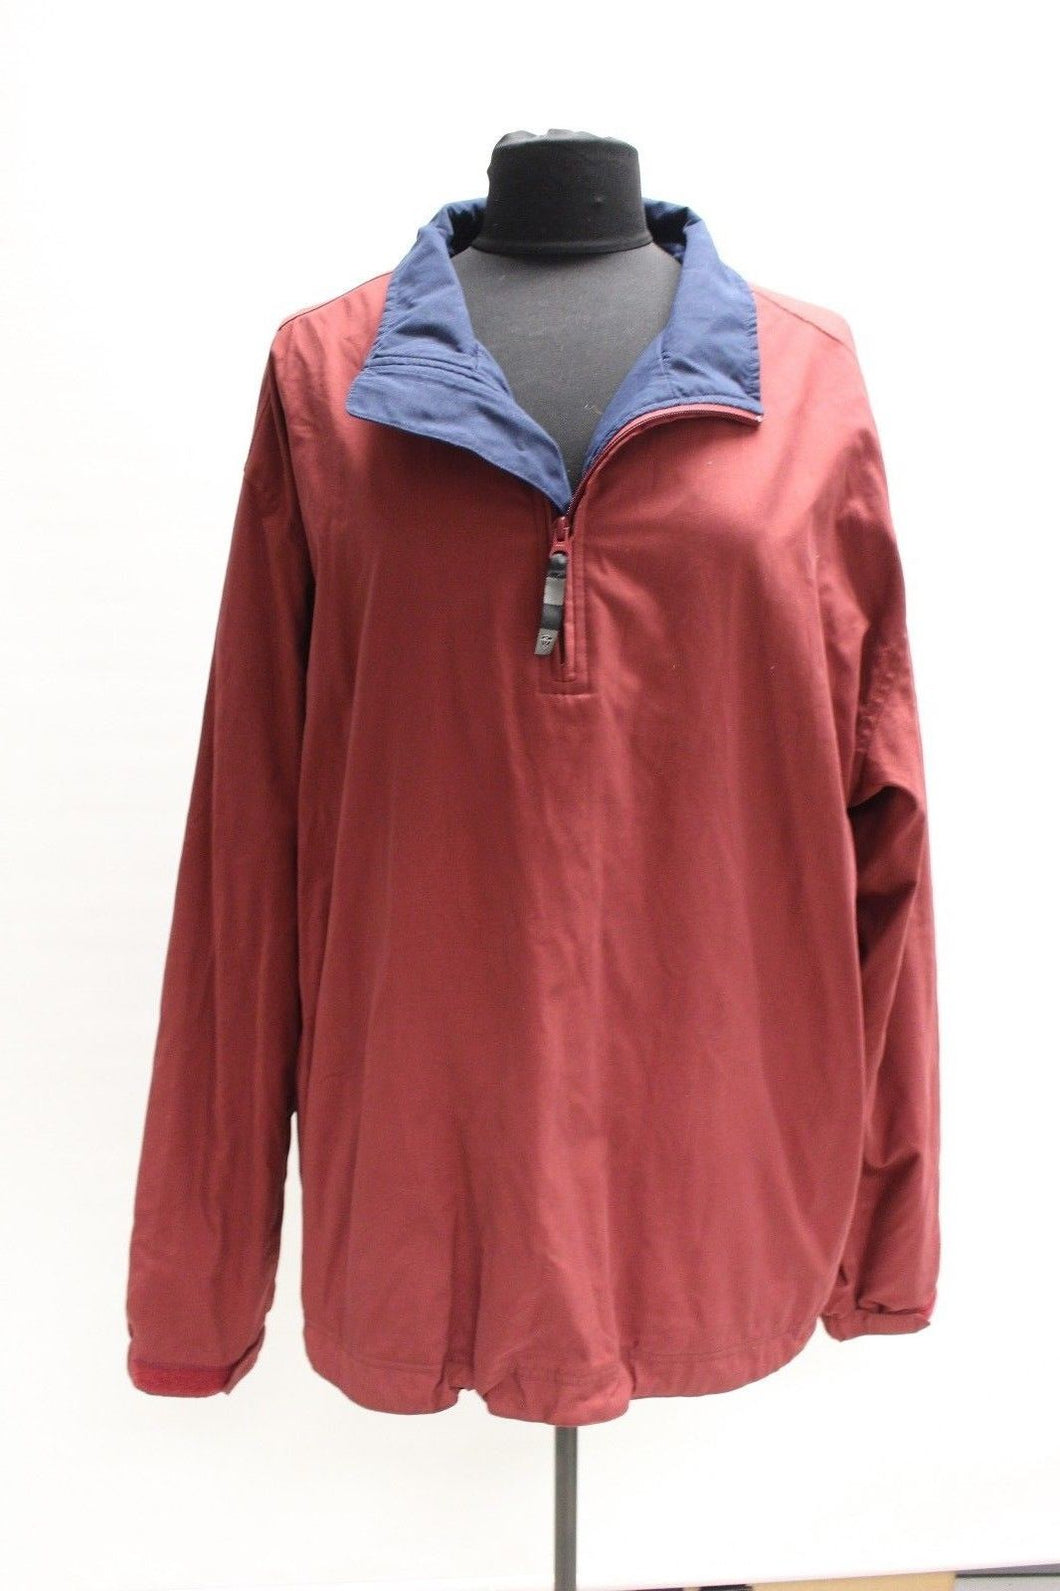 Nike Golf 3/4 Zip Jacket, Size: XL, Color: Burgundy